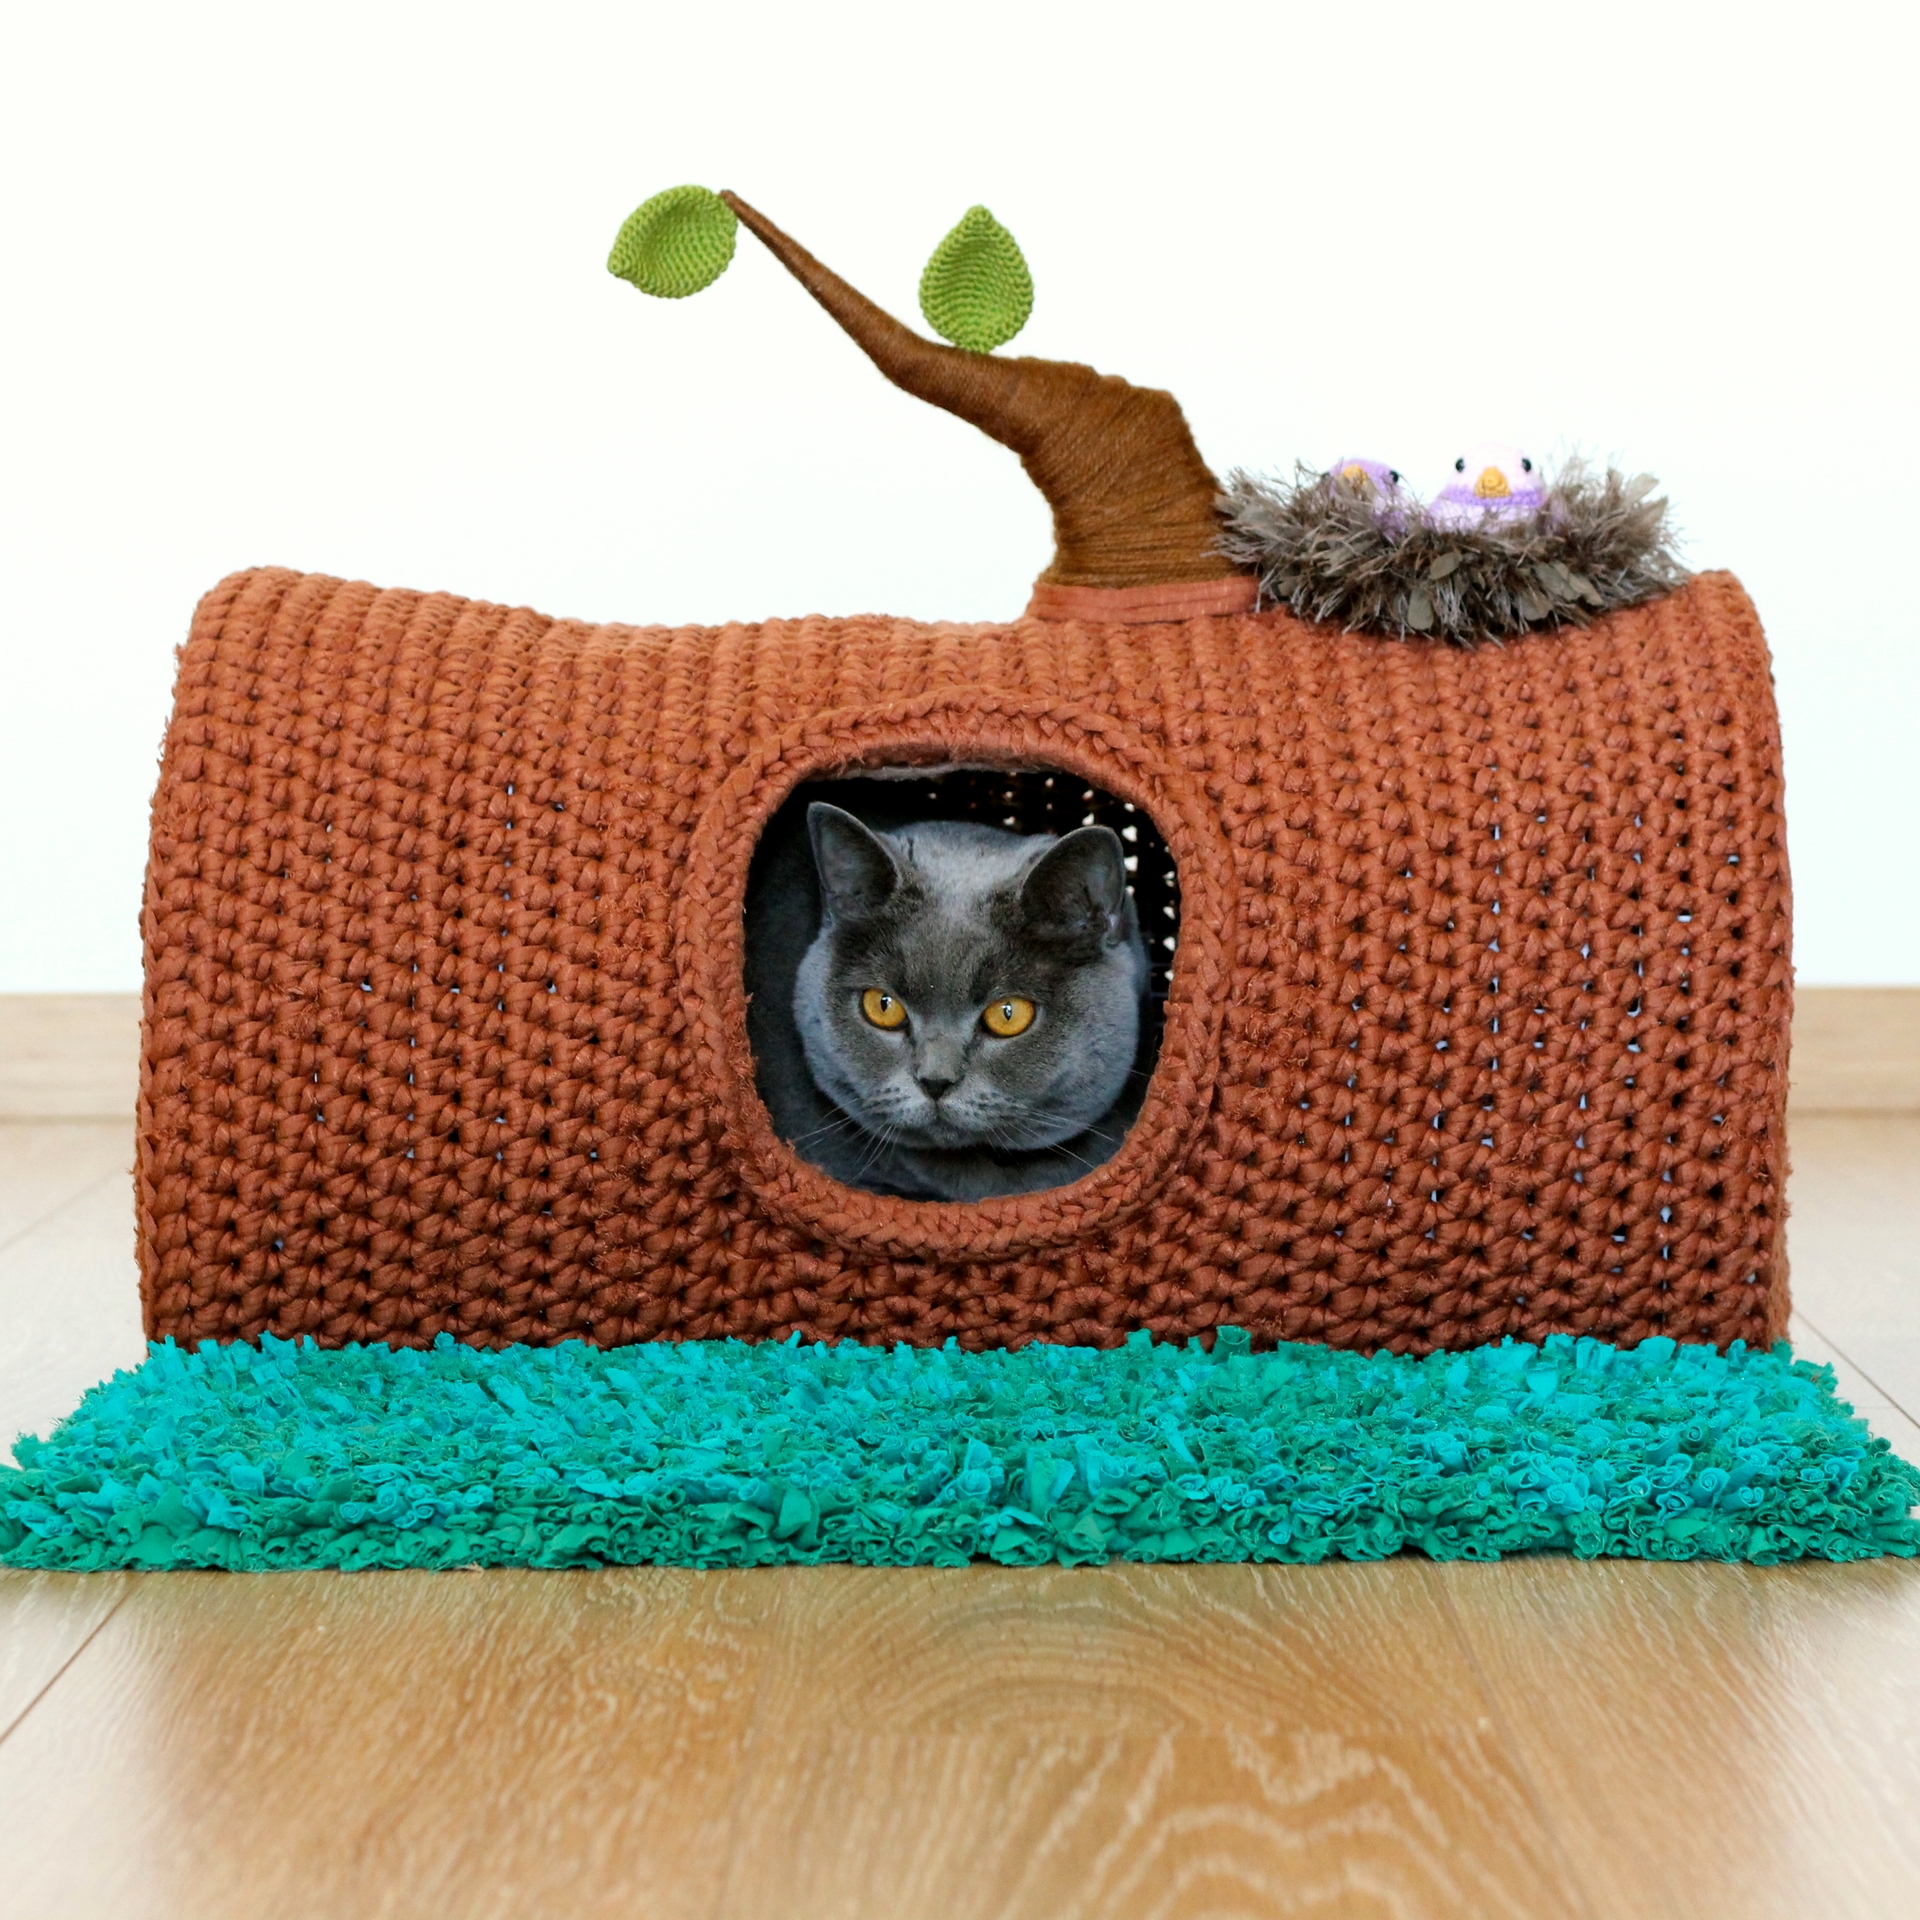 Crochet Patterns Galore - Tabby Chic Cat Bed | 1920x1920